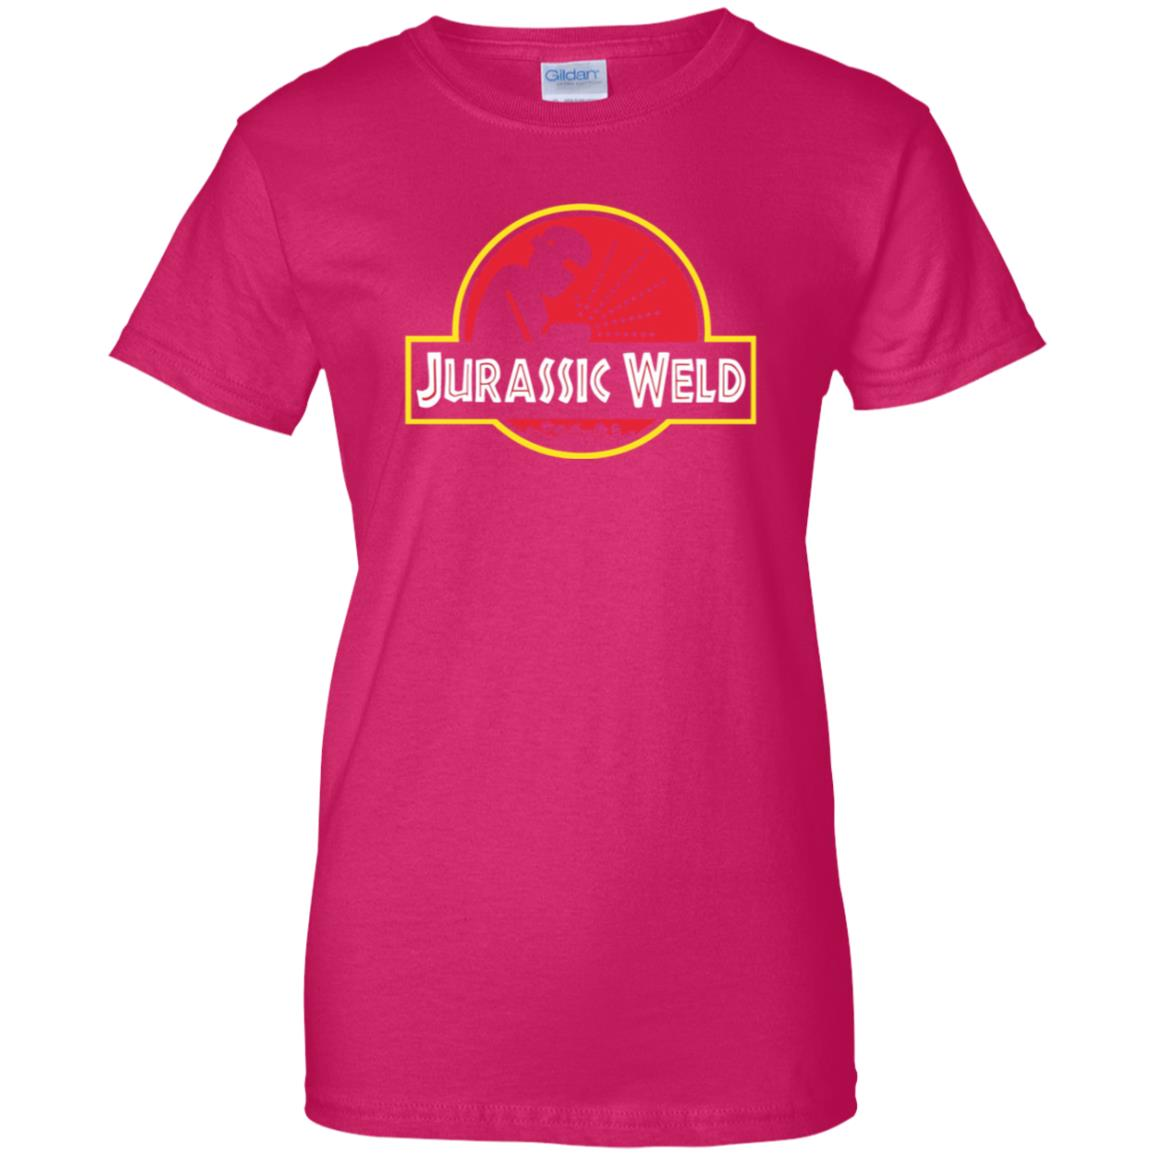 e29270c9 Jurassic Weld womens t shirt - lady t shirt - pink heliconia